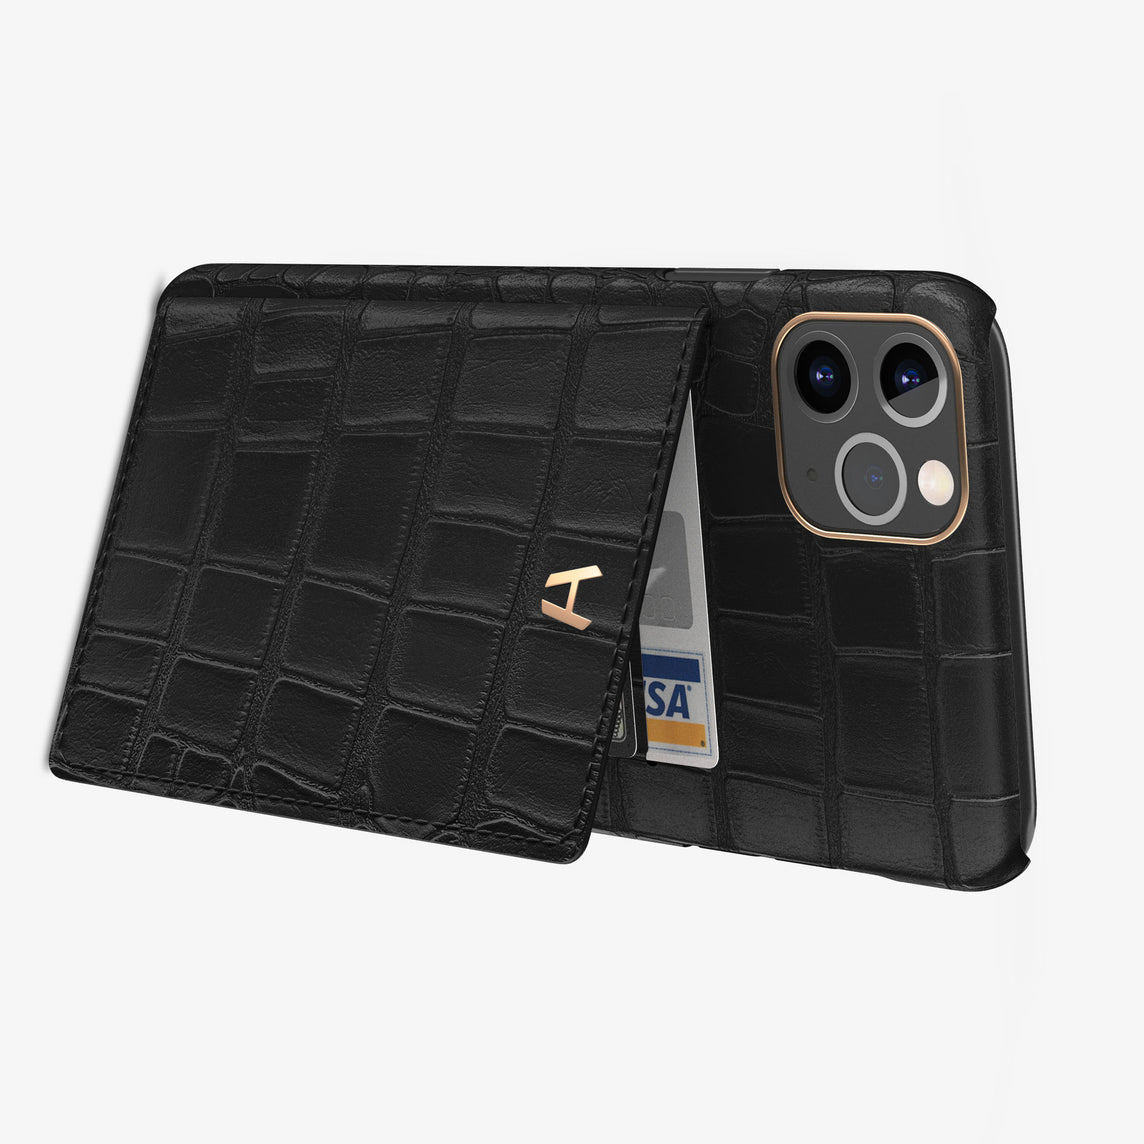 Alligator Card Holder Flap Case iPhone 11 Pro Max | Black - Rose Gold